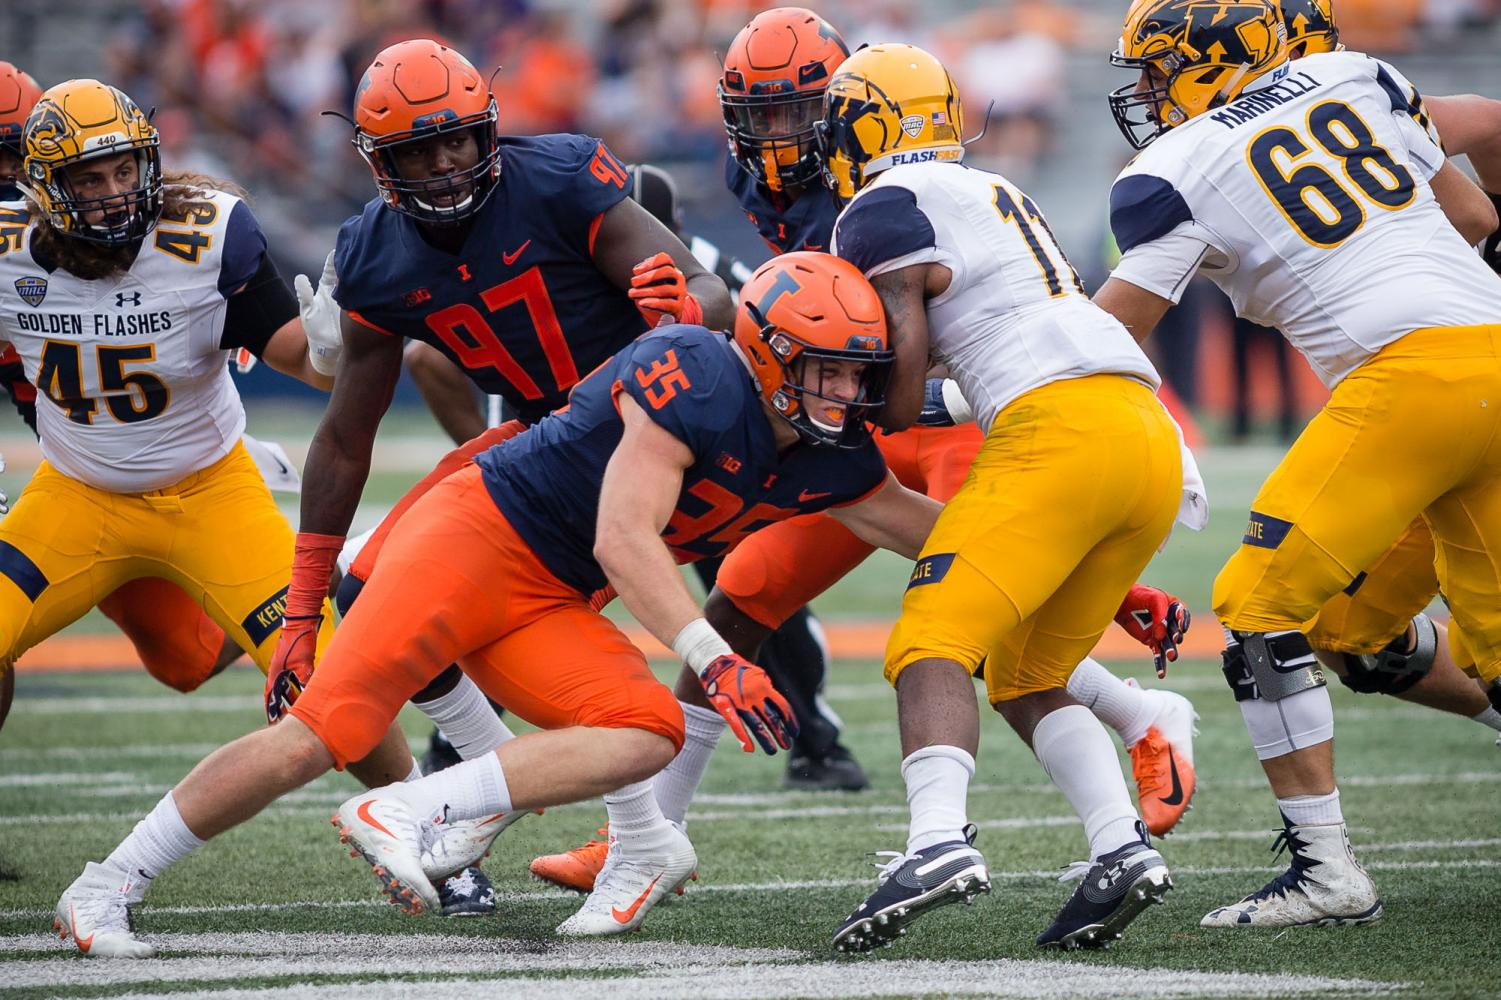 Illinois linebacker Jake Hansen (35) makes a tackle during the game against Kent State at Memorial Stadium on Saturday, Sept. 1, 2018.